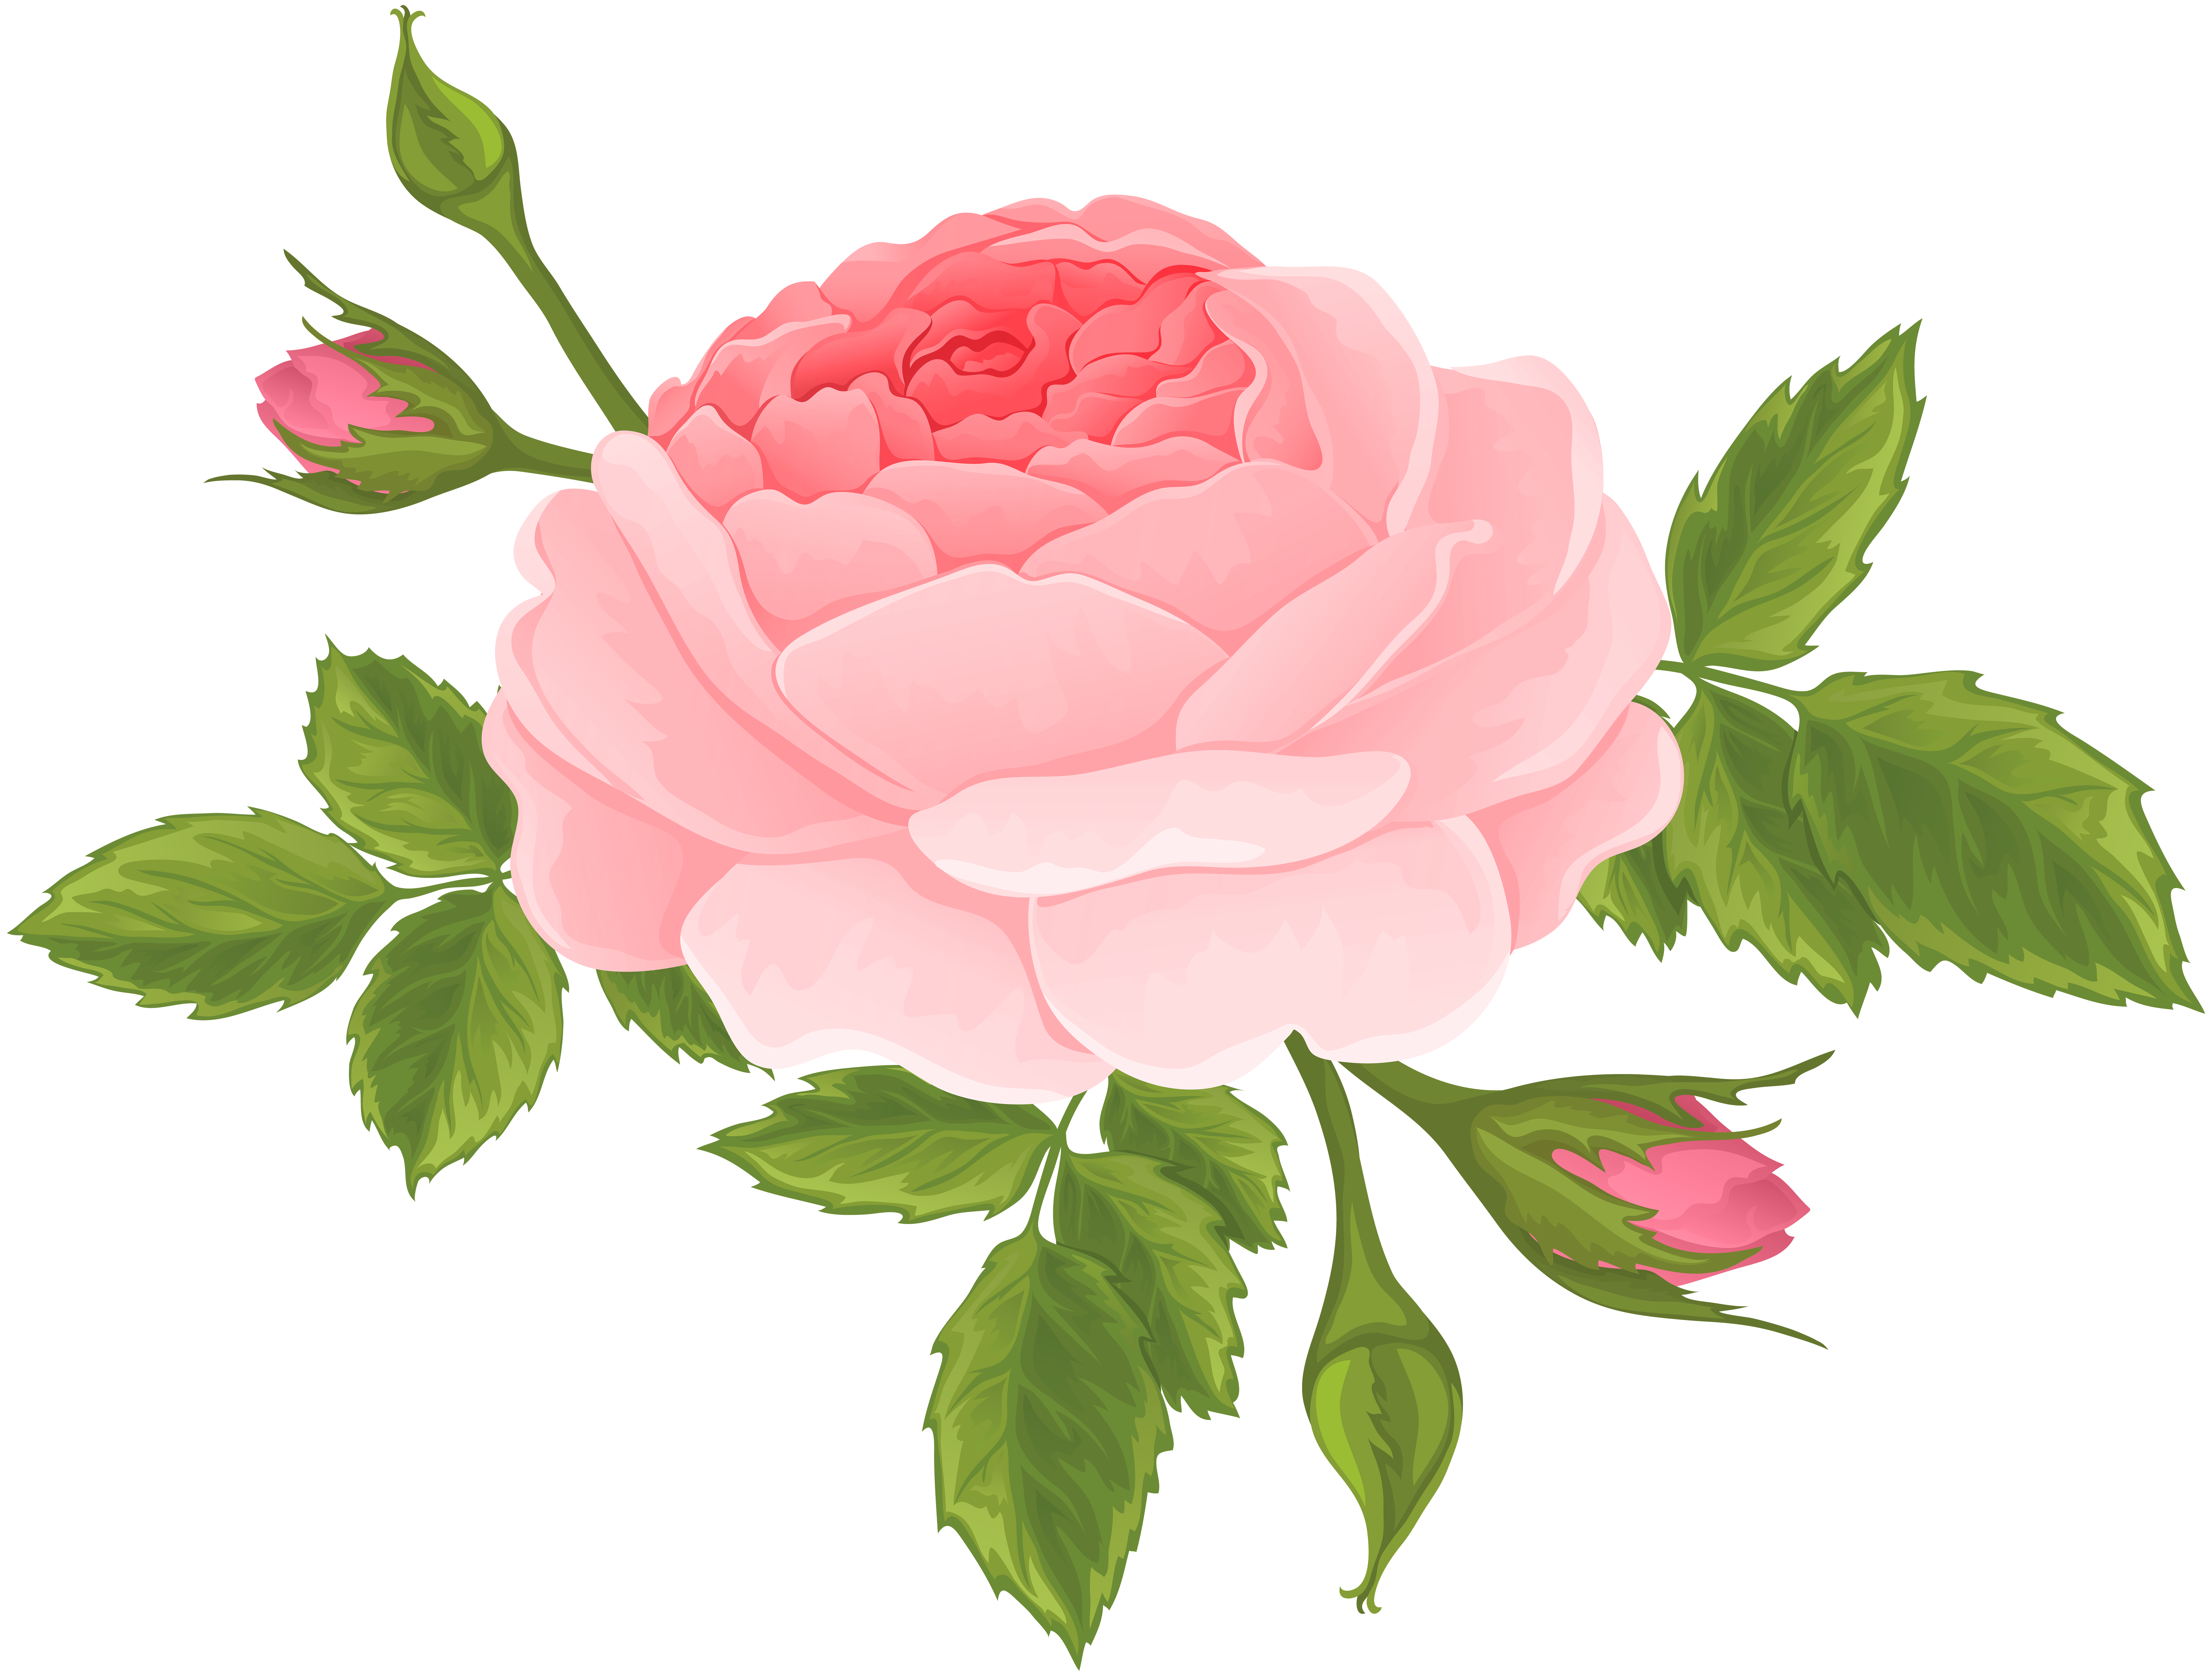 Trolls flower clipart clipart library stock Pink Rose with Buds PNG Clip Art Image | ورود جميلة | Pinterest ... clipart library stock